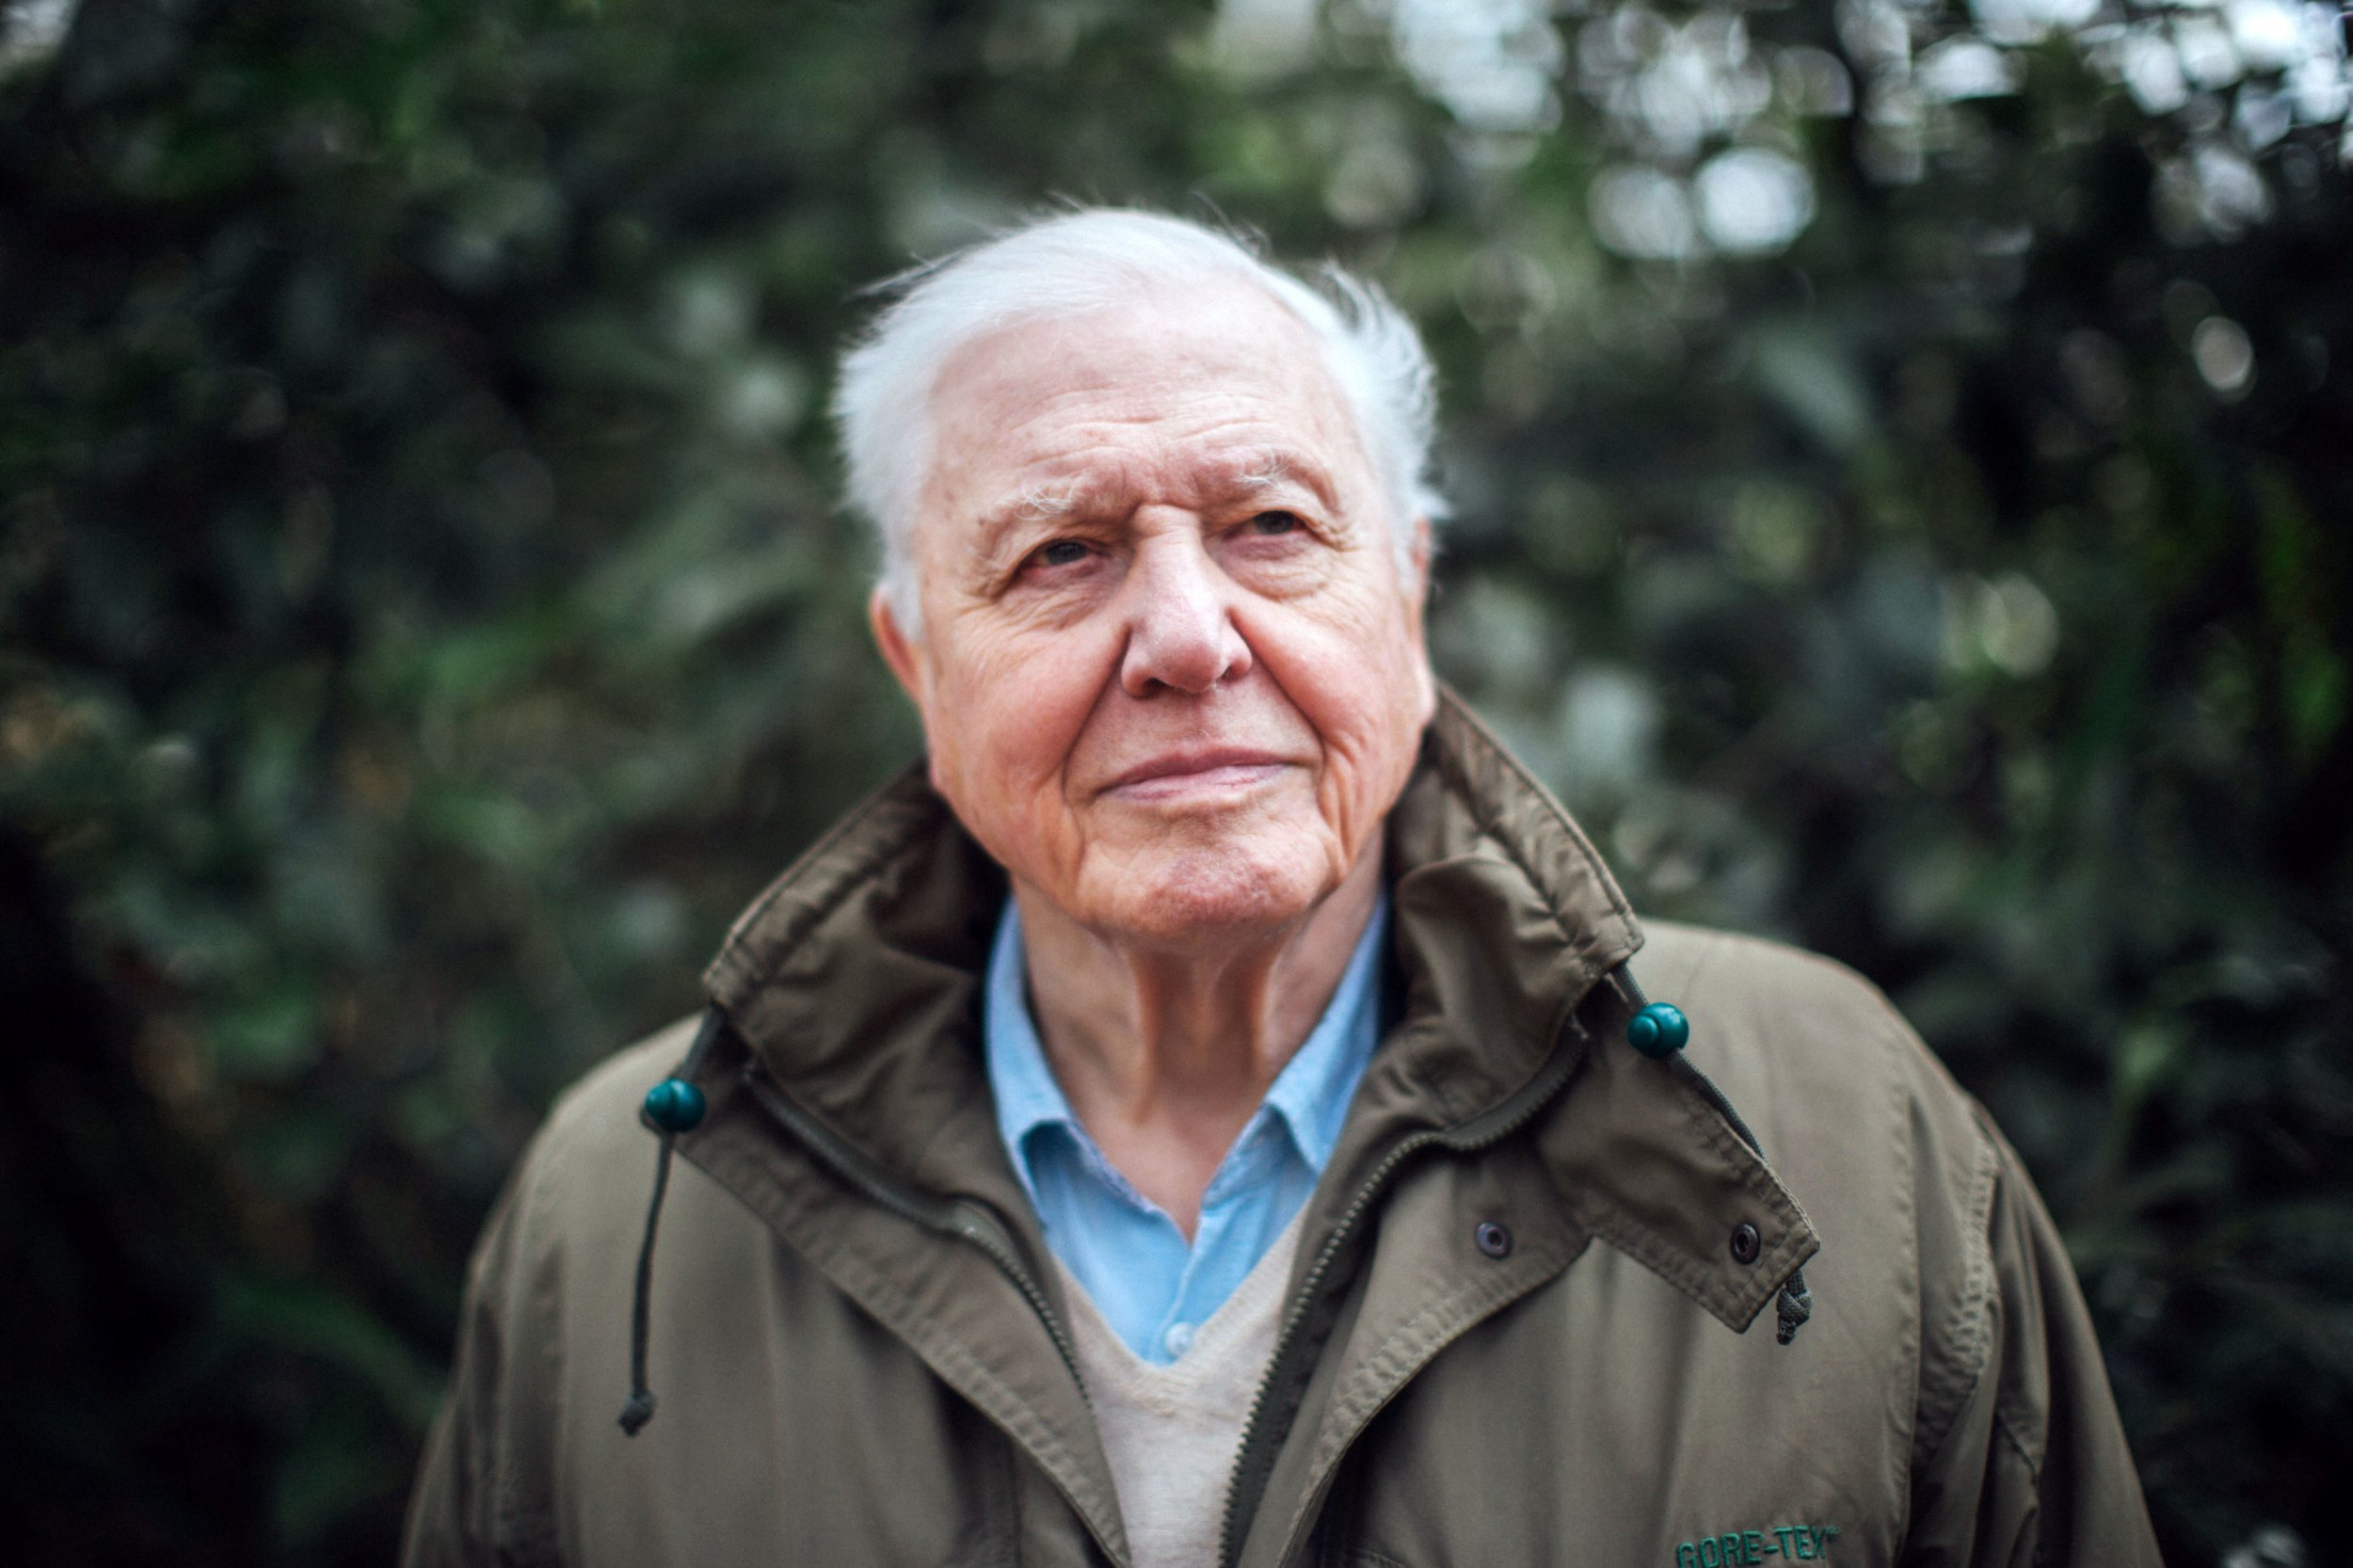 Sir David Attenborough who is returning to screens in Netflix's Our Planet